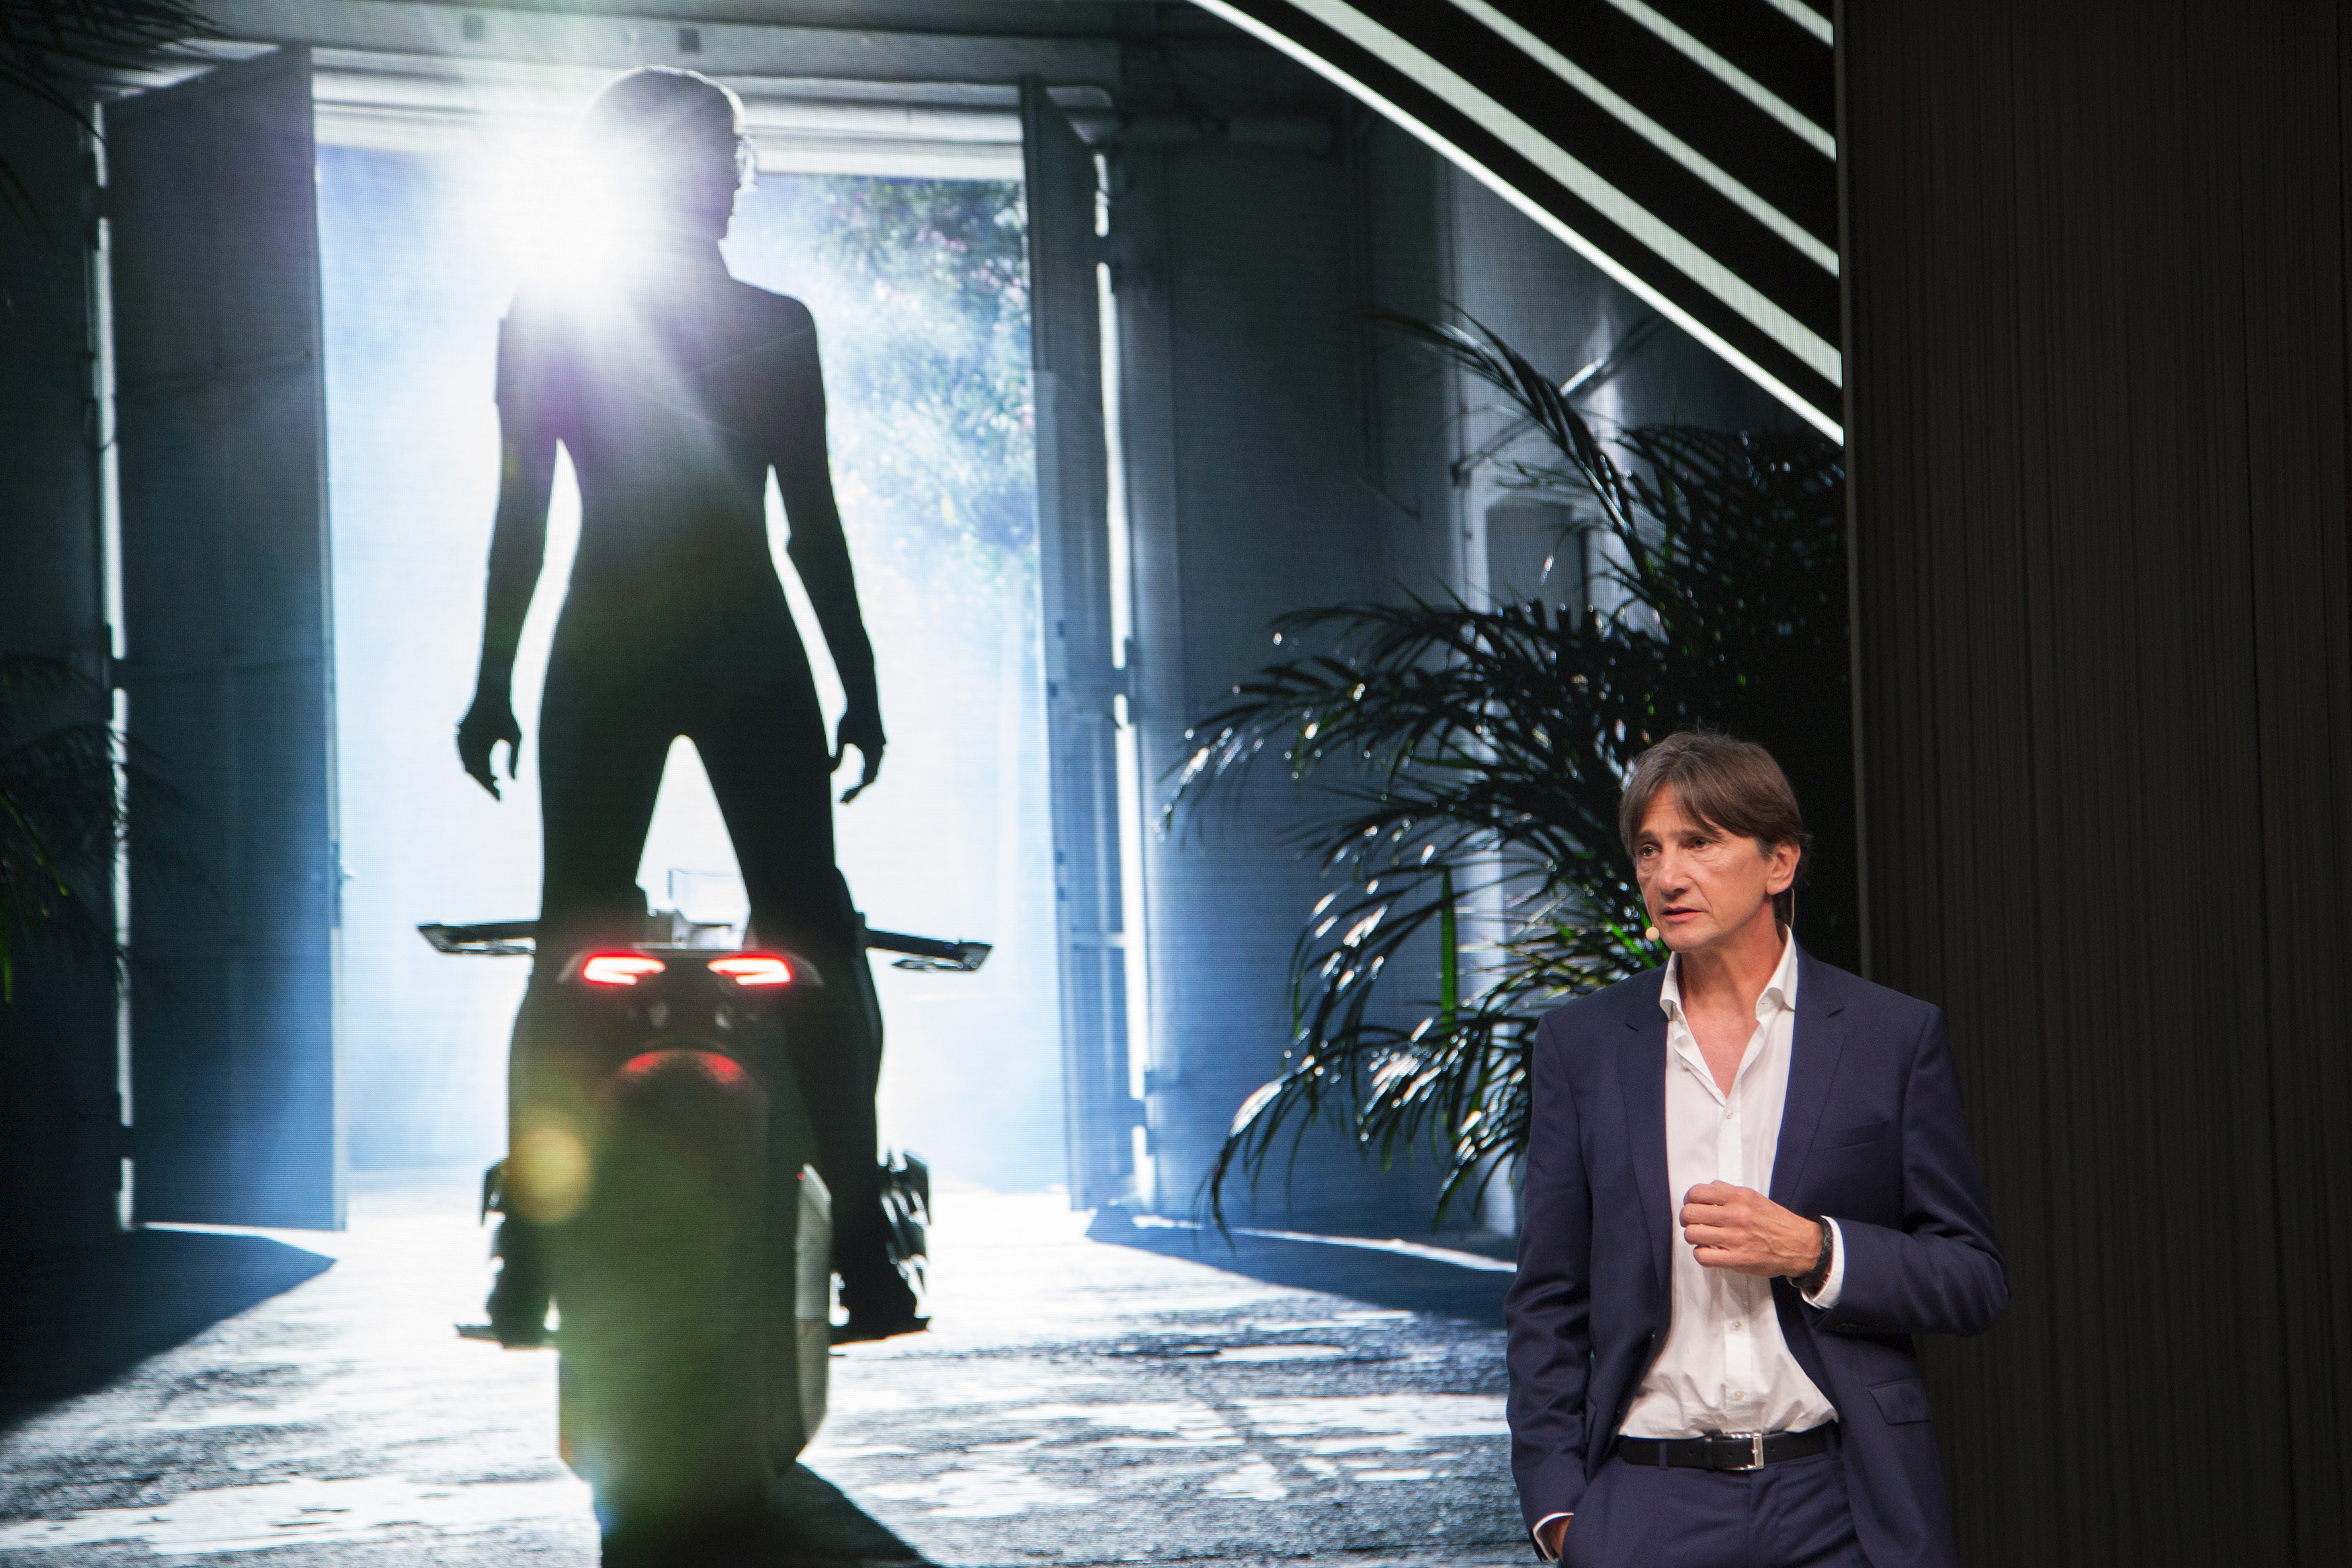 Head of BMW Motorrad Design, Edgar Heinrich speaks at the unveiling of the BMW Motorrad VISION NEXT 100 concept motorcycle at the last of four international stops of the Iconic Impulses event, recognizing 100 years of BMW, on October 11, 2016 in Santa Monica, California. / AFP PHOTO / DAVID MCNEW